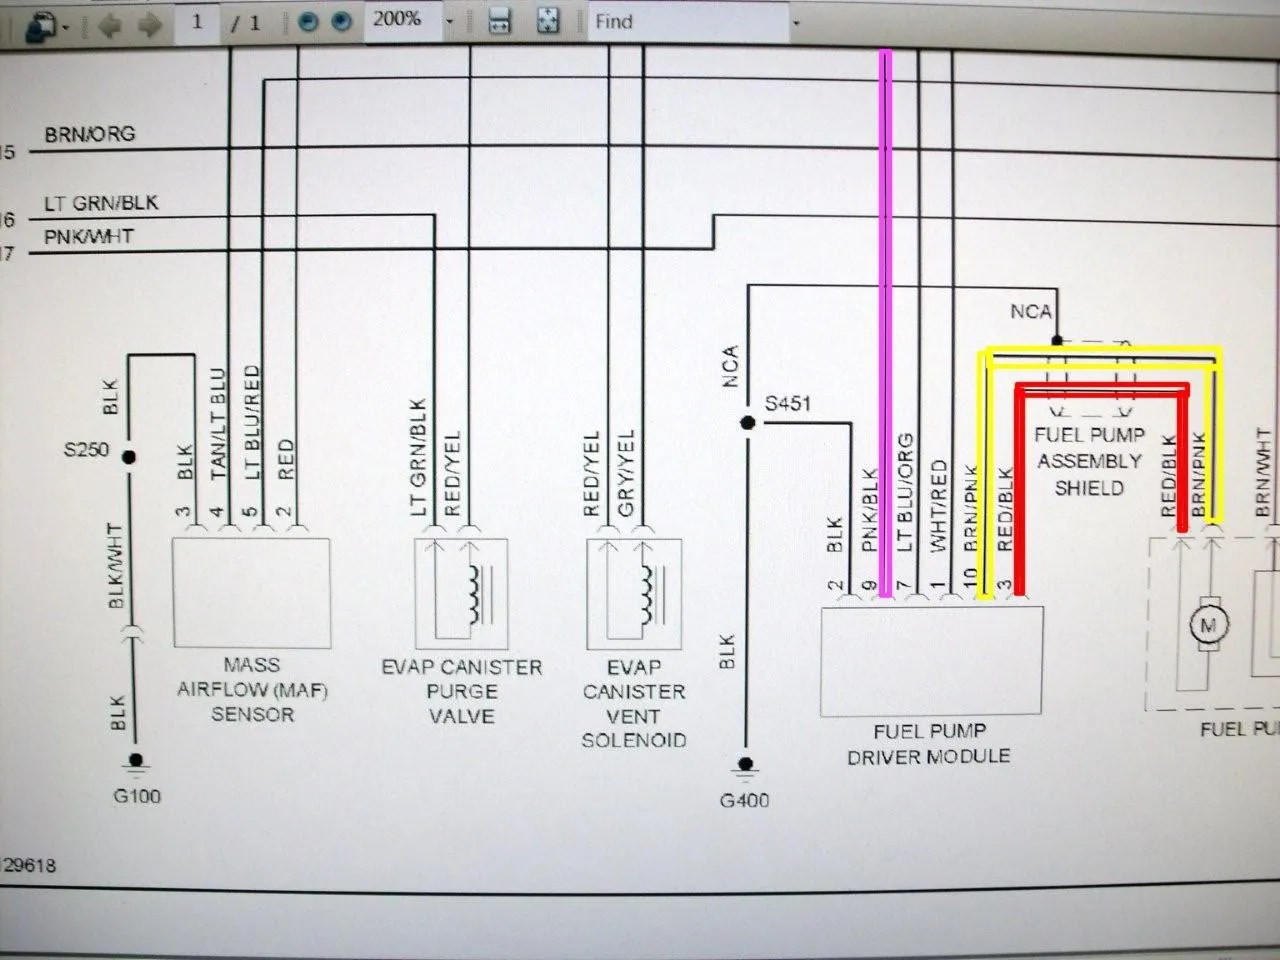 hight resolution of 1965 ford mustang fuel system diagram experts of wiring diagram u2022 rh evilcloud co uk 1988